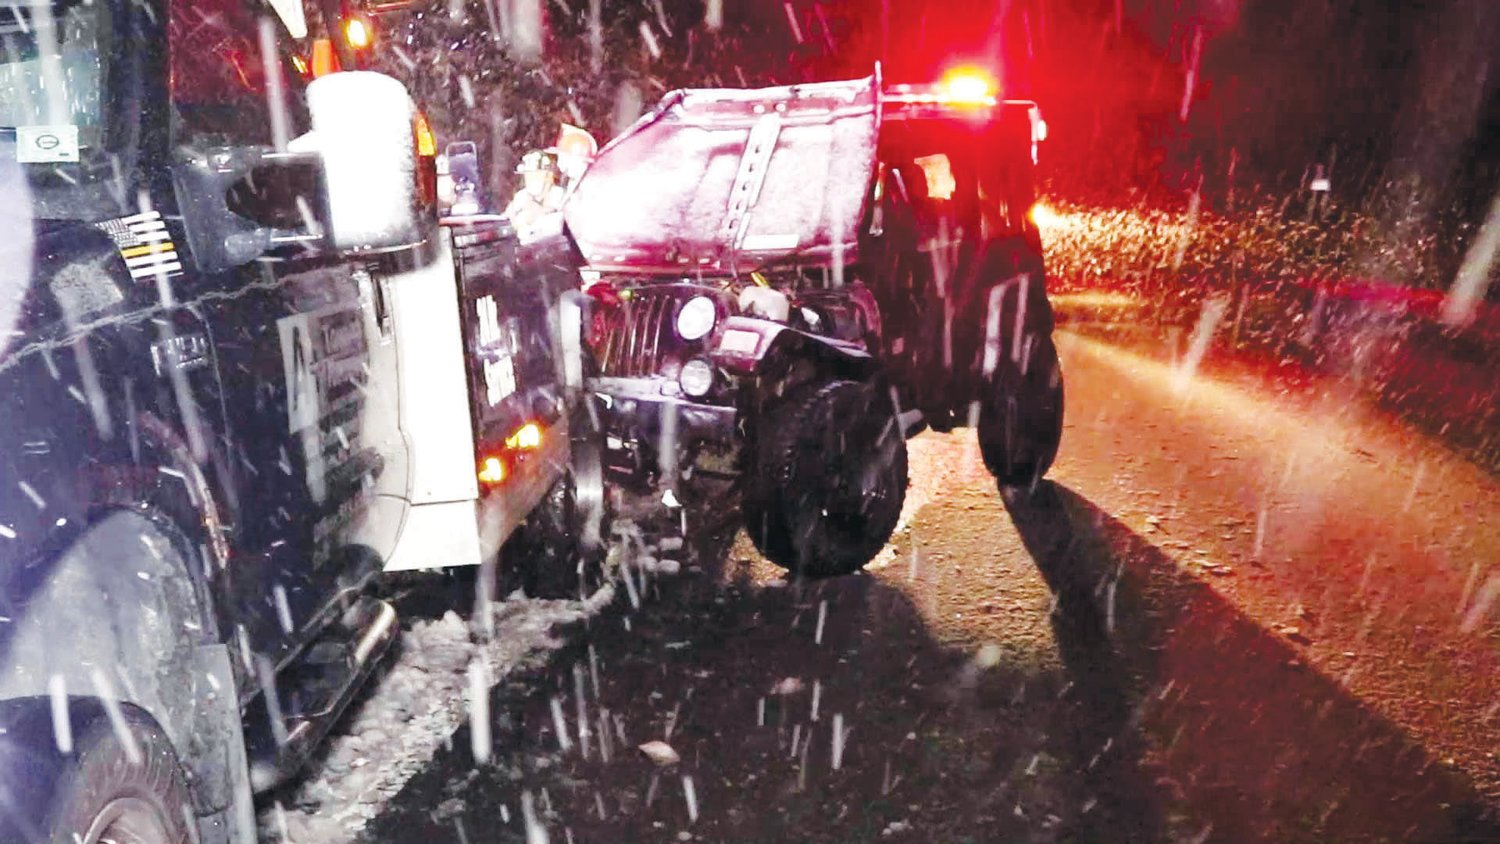 Jeep crashes into wrecker on snowy road....The driver of a wrecker aiding a motorist stuck on an embankment during Thursday's snowy weather got more than he bargained for at the scene. The wrecker, from A+ Towing and Recovery in Mount Olive was in the process of pulling the spun out vehicle onto Interstate 40 when a driver heading west on the interstate, lost control and struck the rear of the tow truck. The driver said when he saw the Jeep headed his way, he ran from the rear of the wrecker, escaping without being hit himself. The wrecker driver said he sustained only minor injuries when running away from the crash. The driver of the Jeep was uninjured.